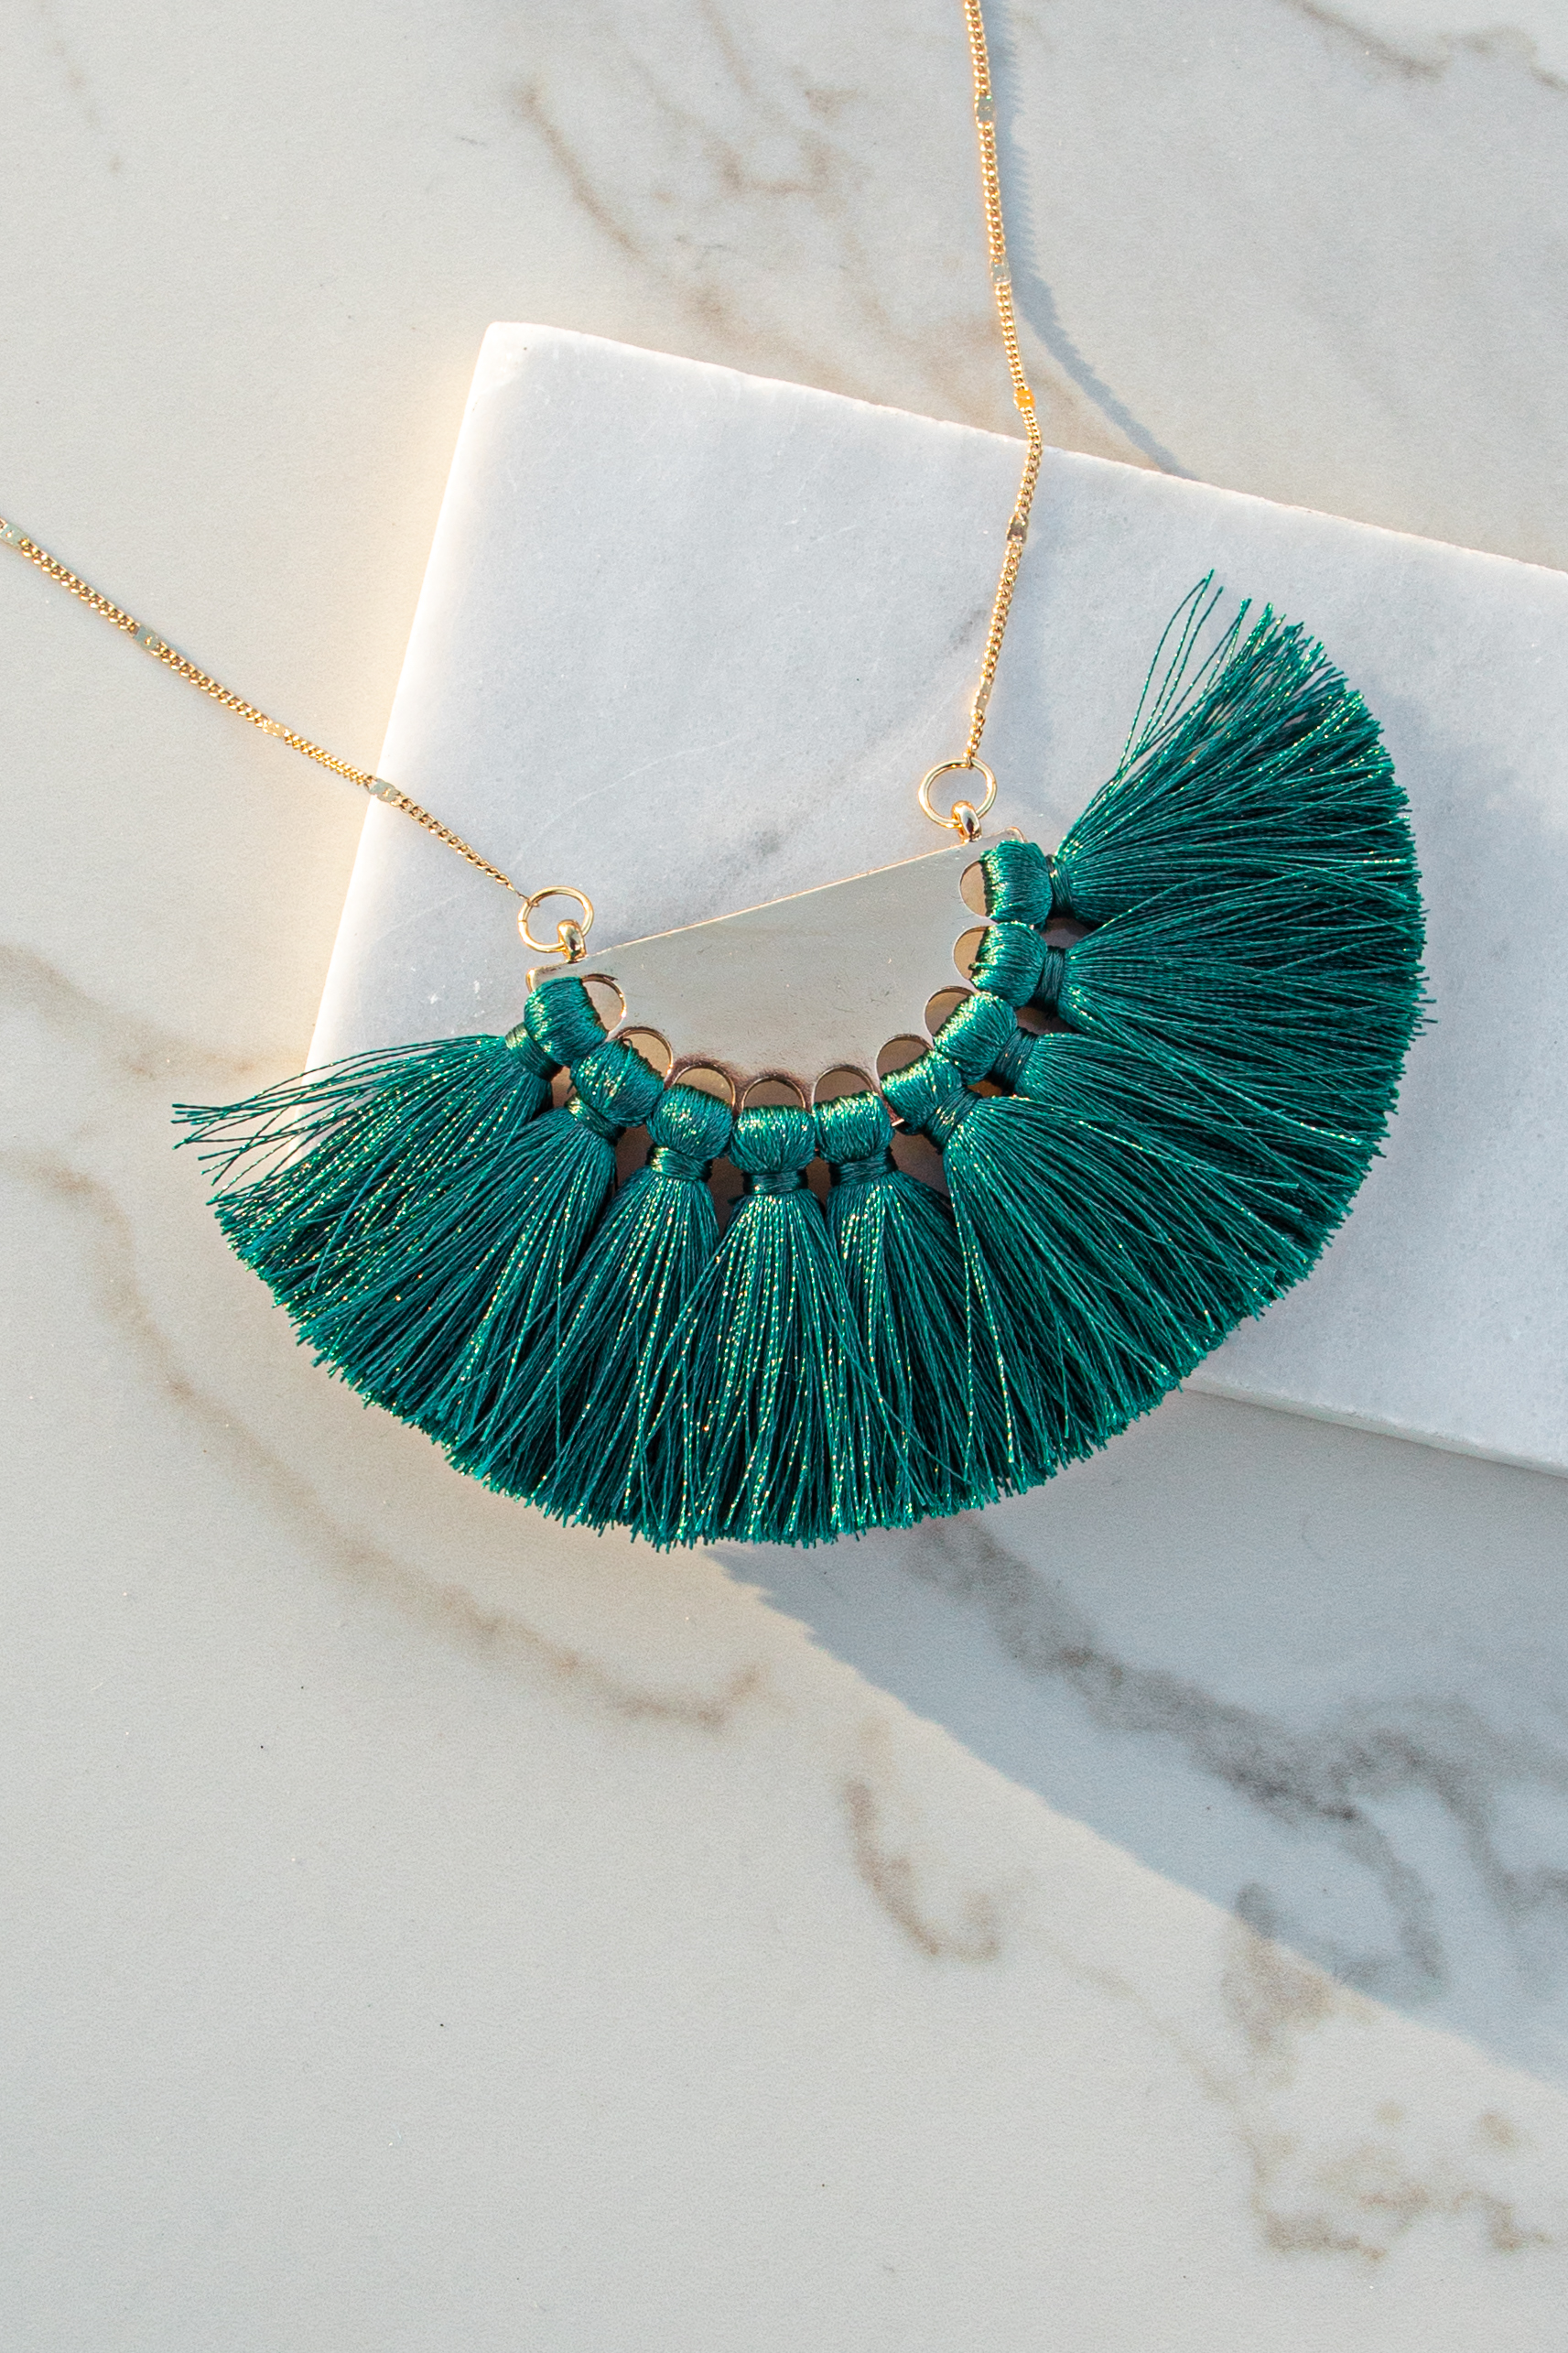 Gold Long Necklace with Large Hunter Green Fringe Pendant